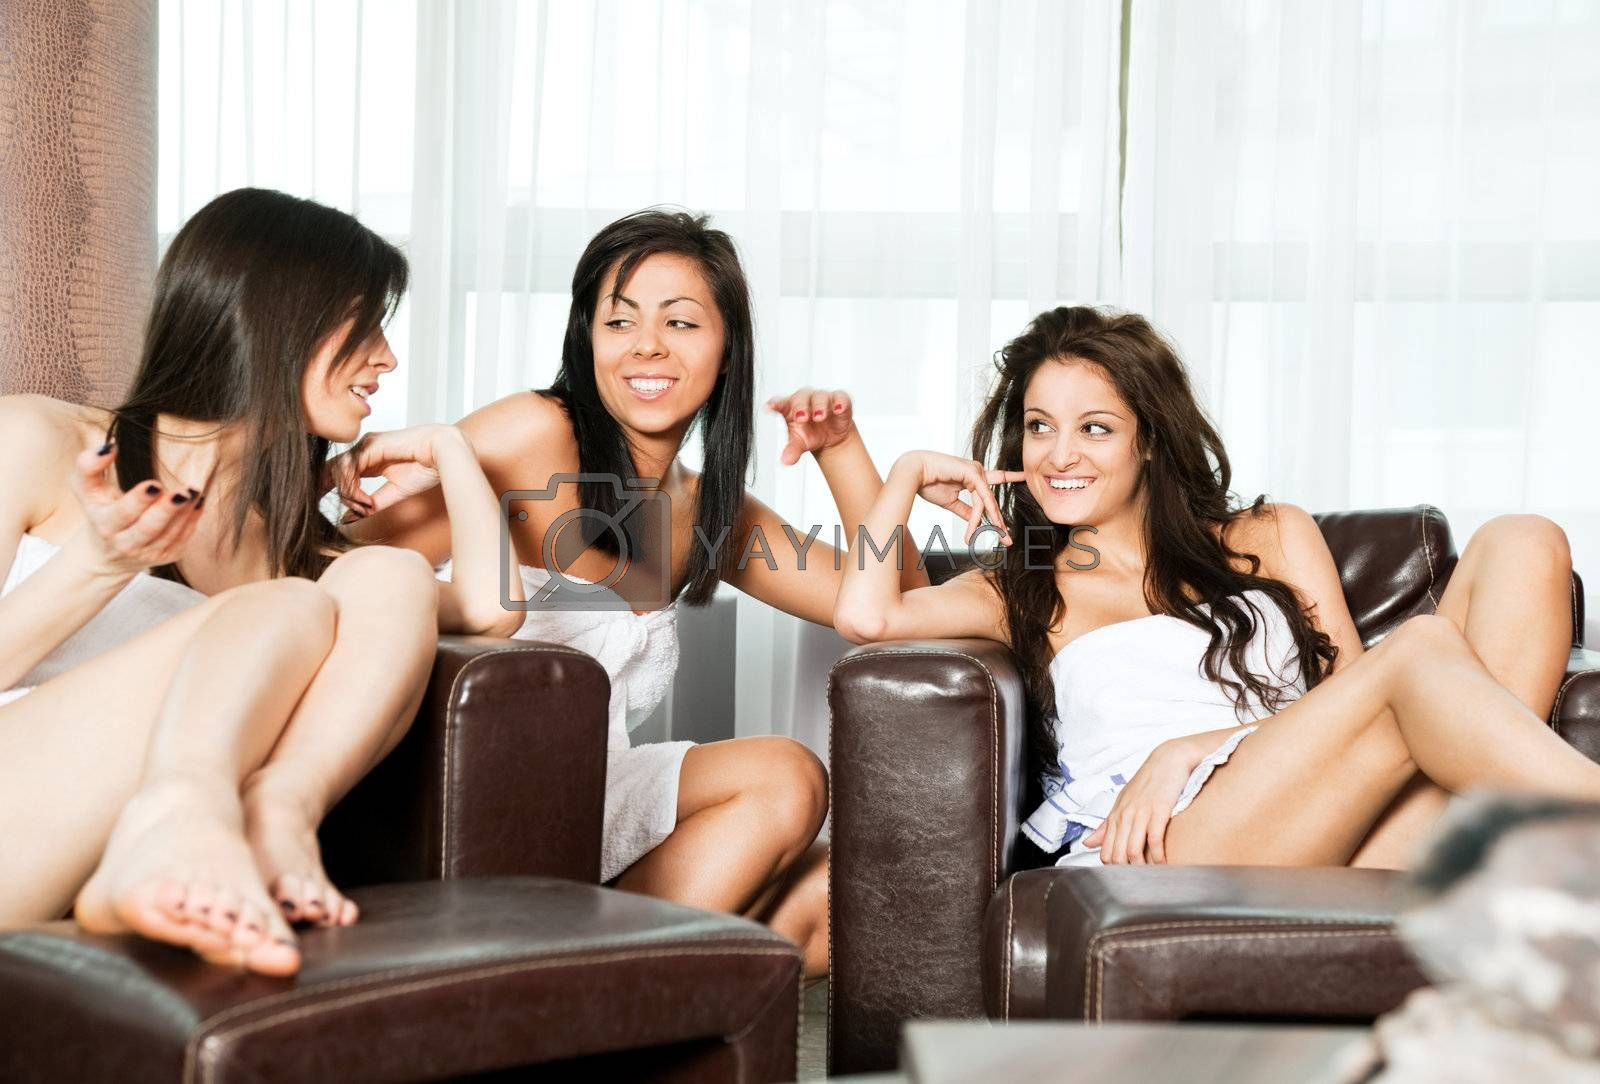 Three young beautiful women talking and relaxing in spa center lobby